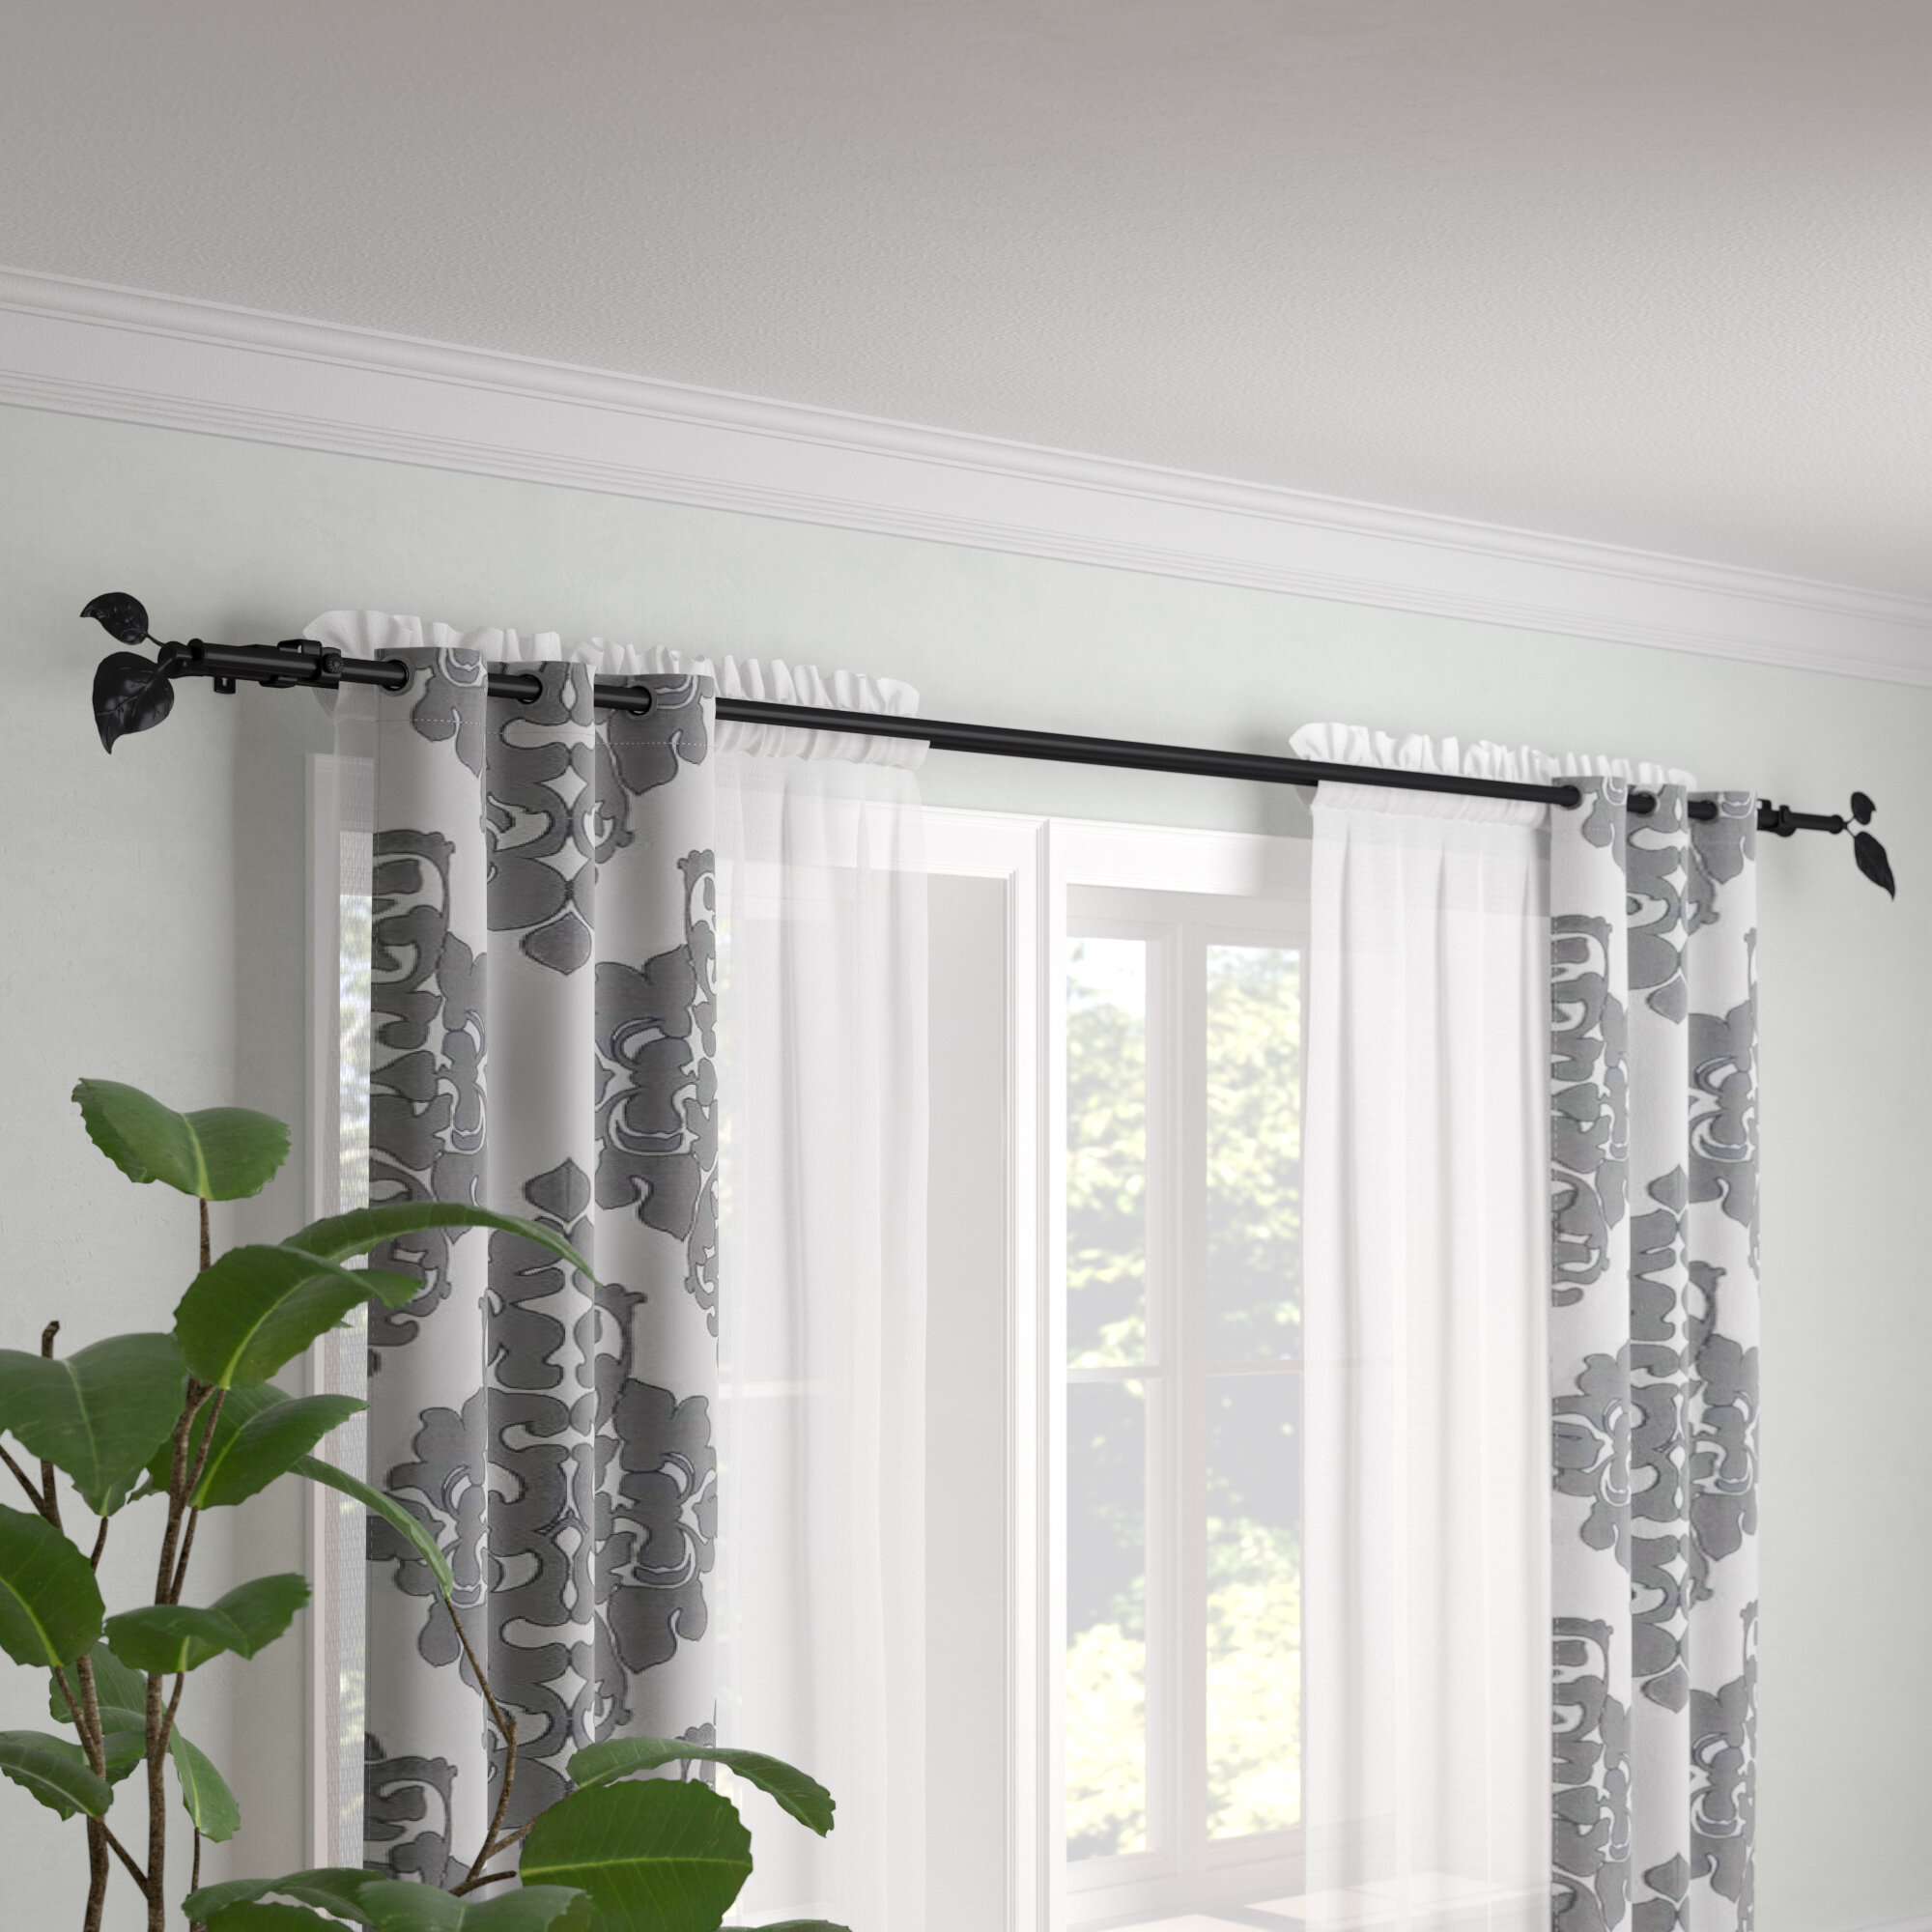 Sycamore Double Curtain Rod And Hardware Set